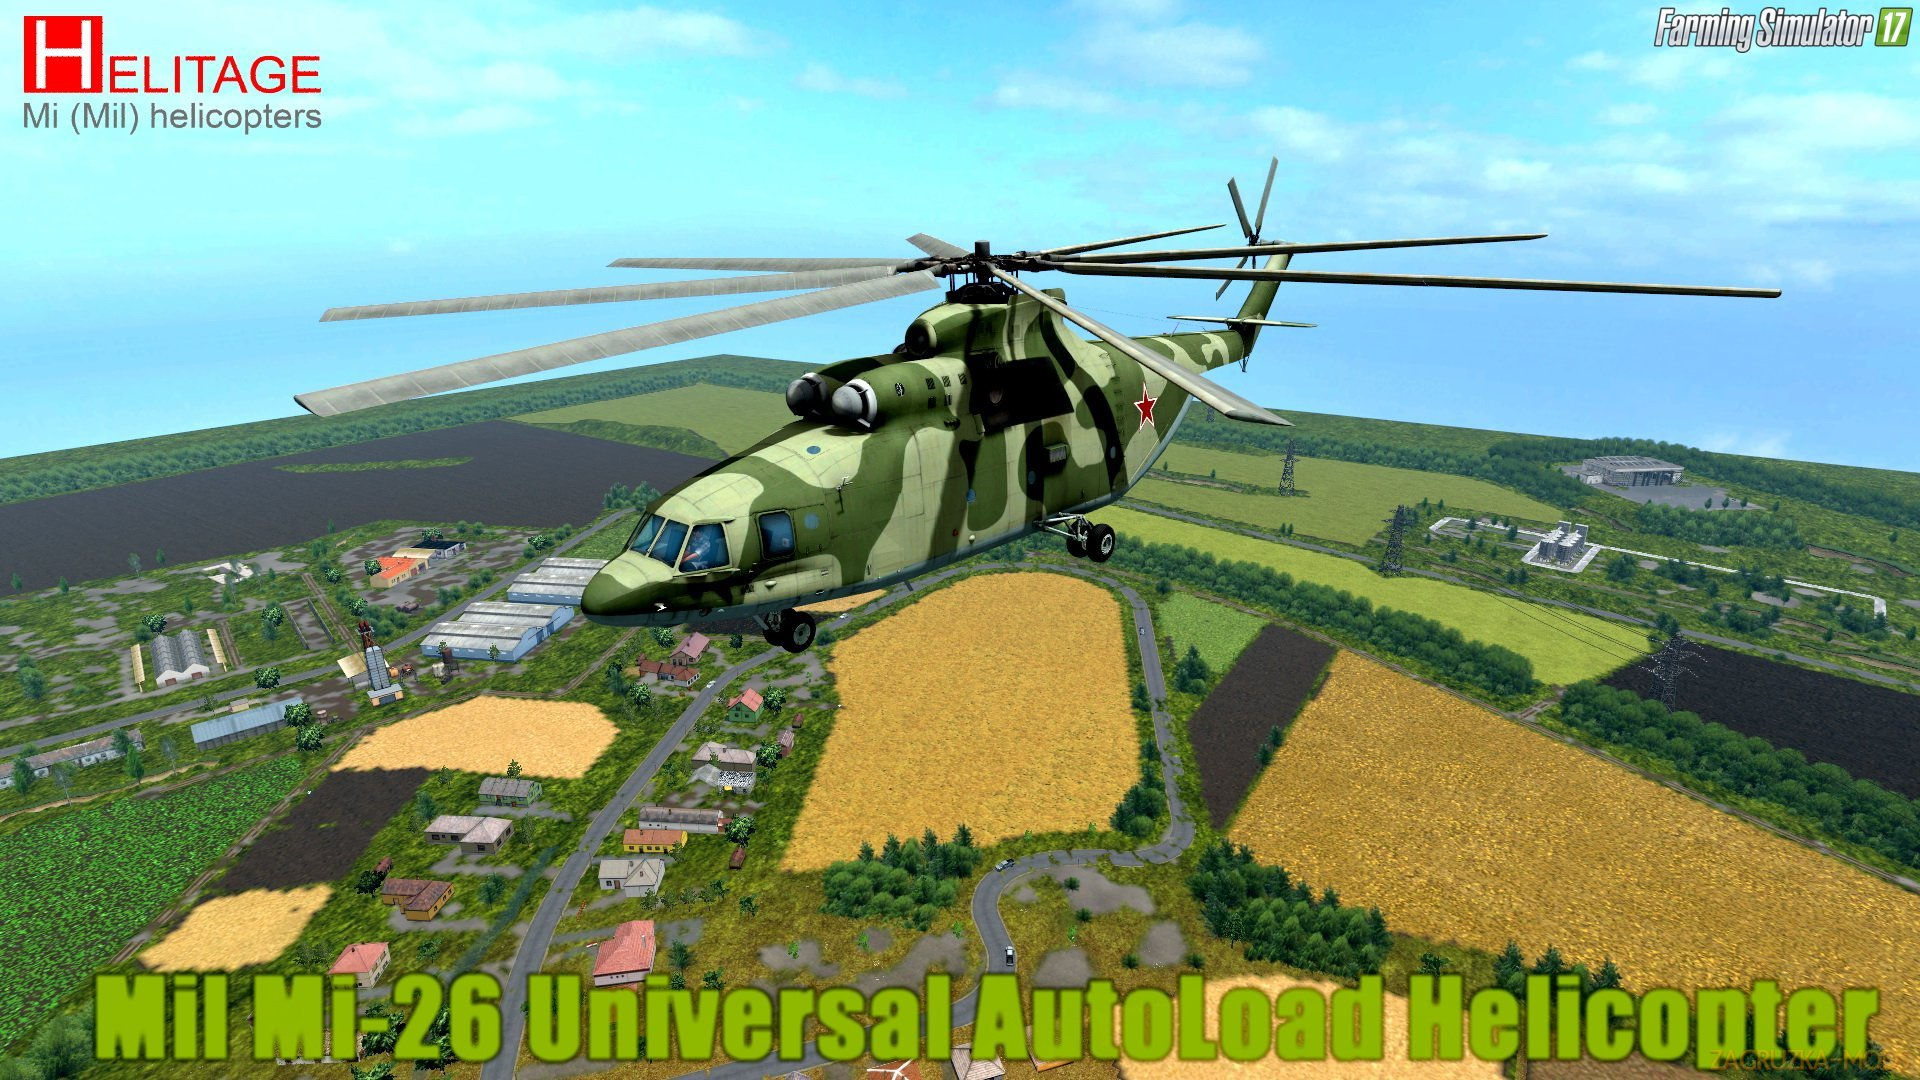 Mil Mi-26 Universal AutoLoad Helicopter v1.0 for FS 17